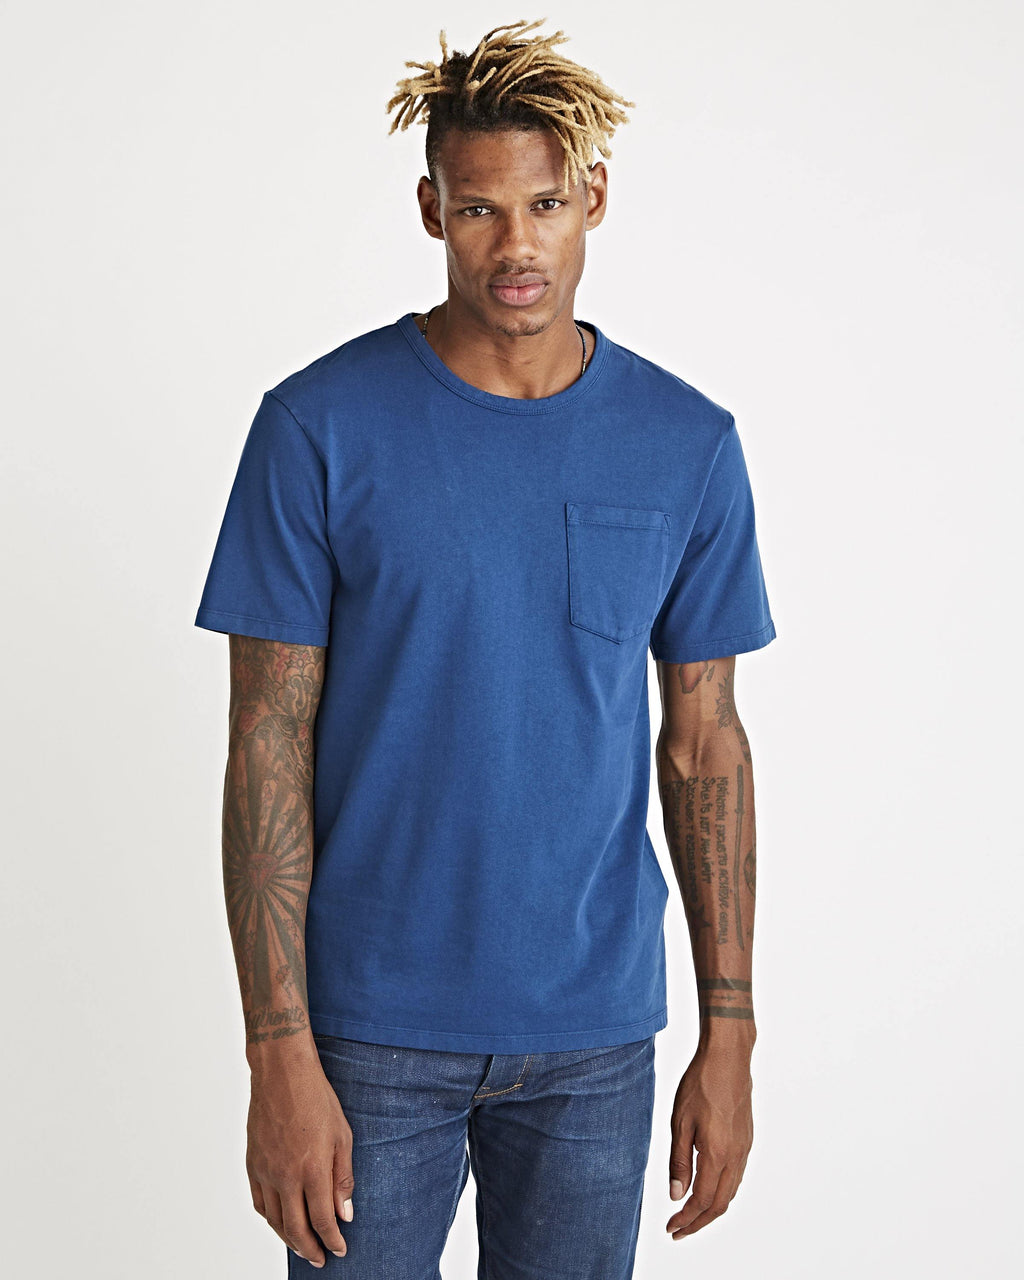 John Pocket Tee Indigo